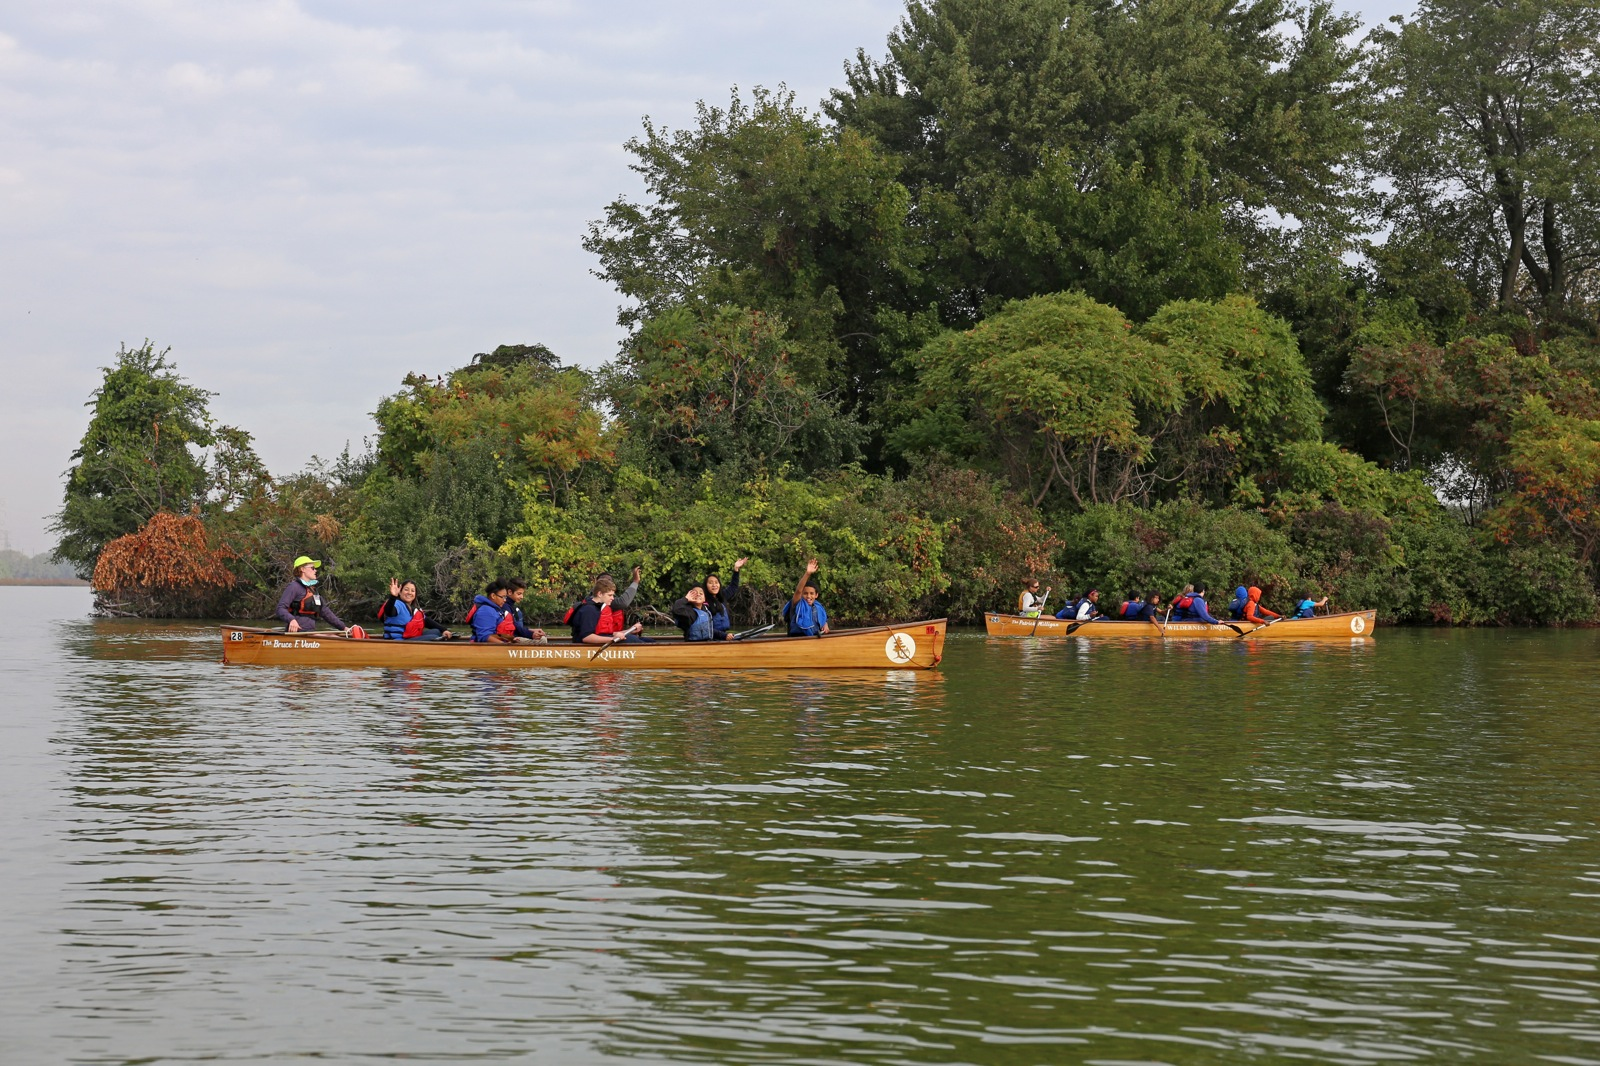 two voyageur canoes paddle near the vegetation on land in Wolf Lake Memorial Park